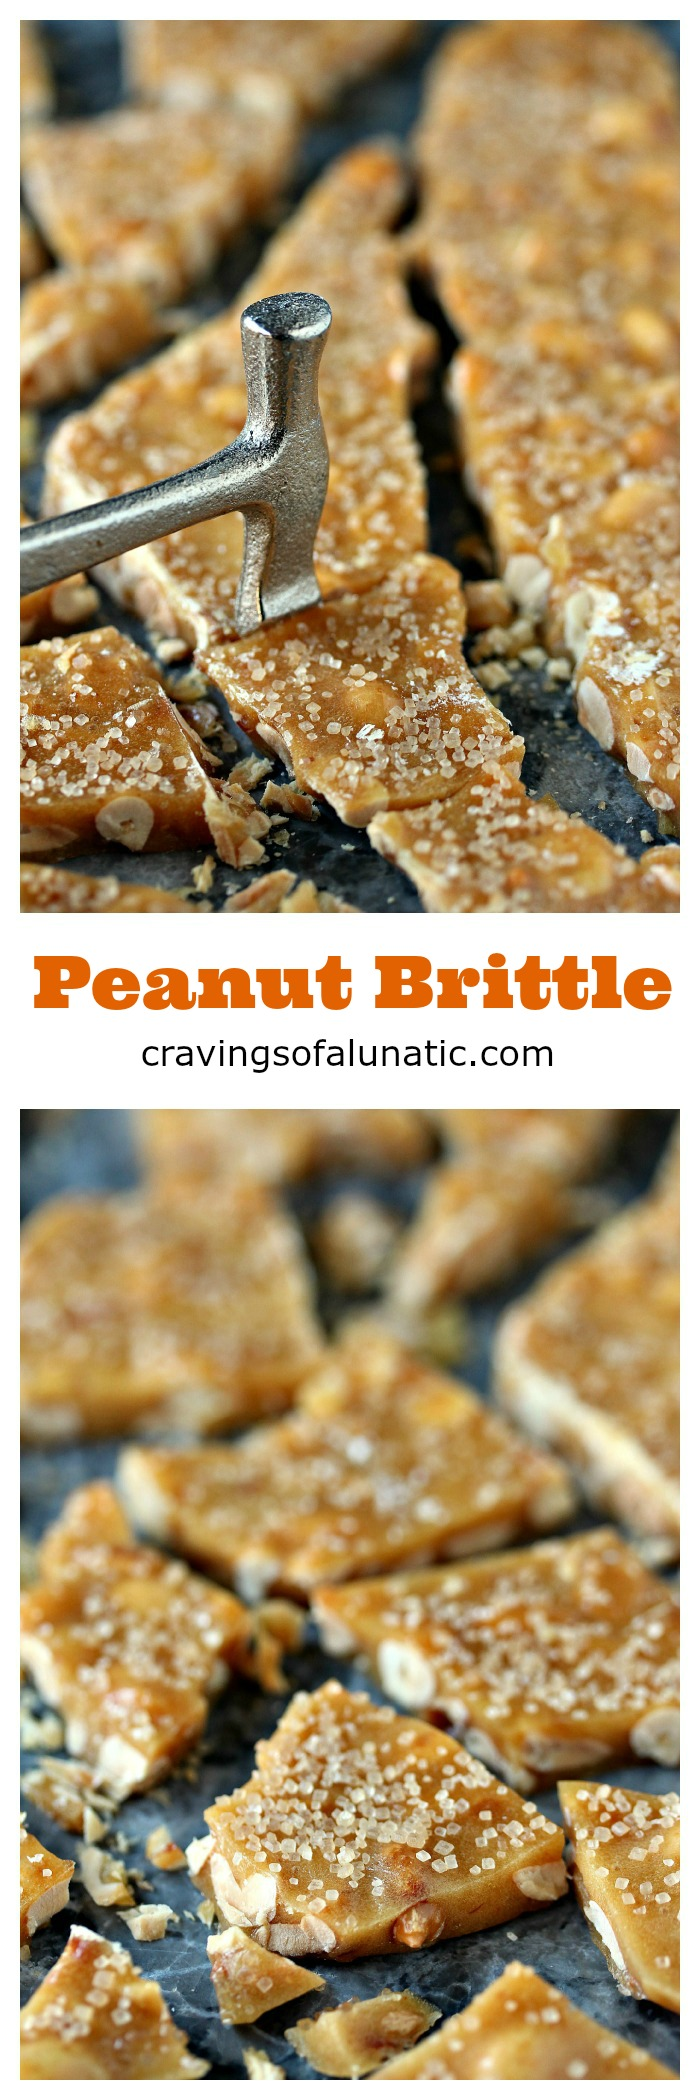 Peanut Brittle from cravingsofalunatic.com- Easy and quick, this Microwave Peanut Brittle is sheer perfection. Sweet mixes with salty for the perfect bite every time! (@CravingLunatic)